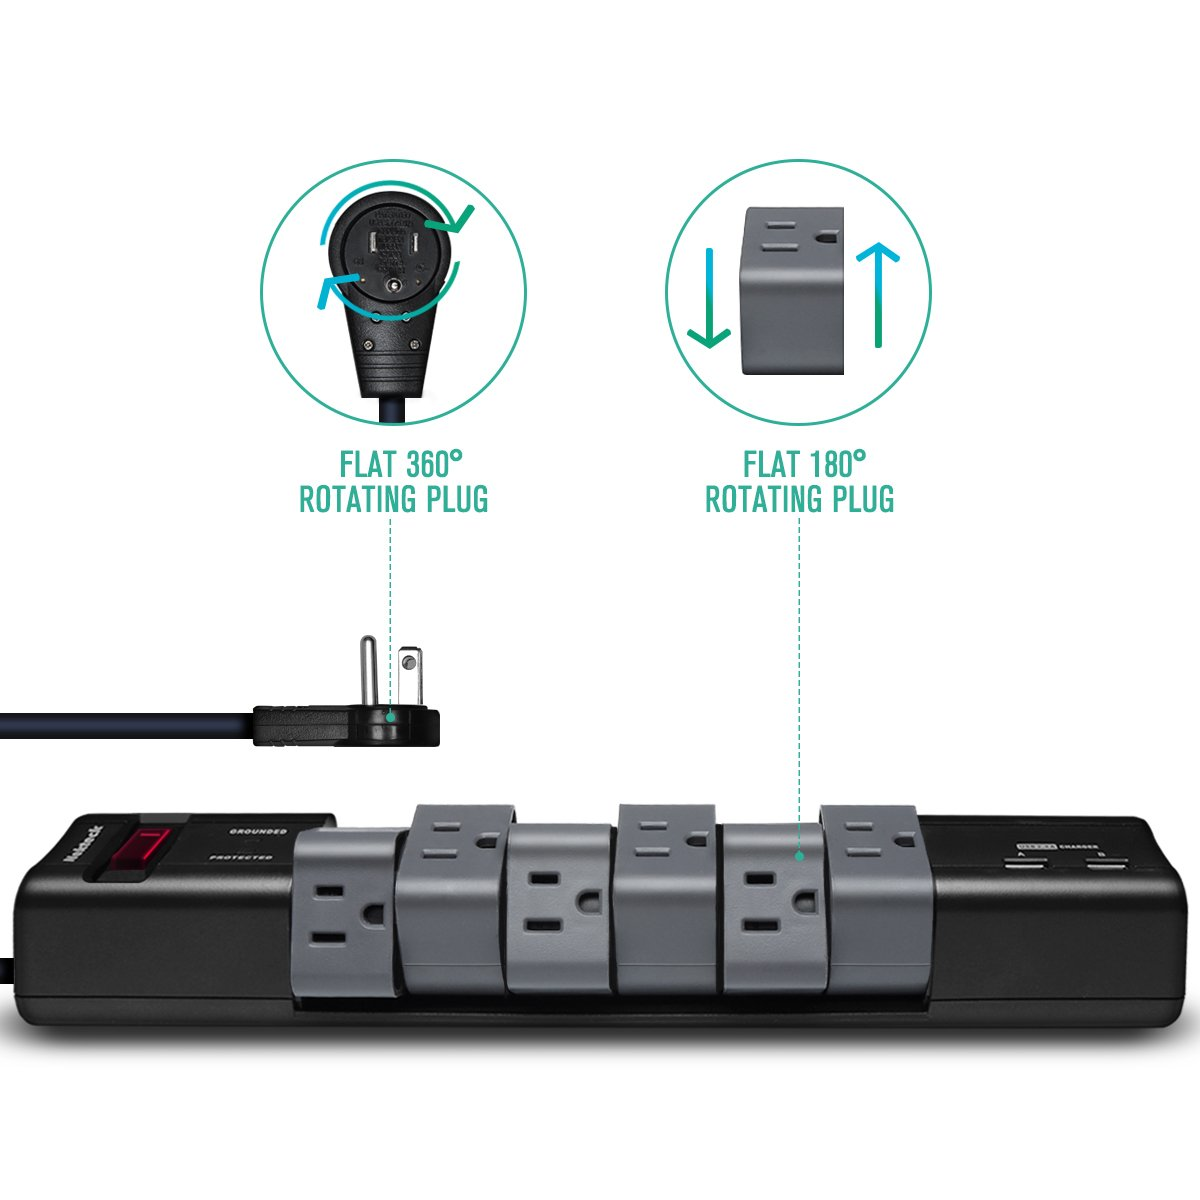 Nekteck [UL Listed] 90/180 Degree Rotating Power Strip/Surge Protector,360°Flat Wall Charger Plug with 6-Outlets 2 USB 2.4A Charging Ports and 6FT Power Extension Cord Surge Suppressor by Nekteck (Image #2)